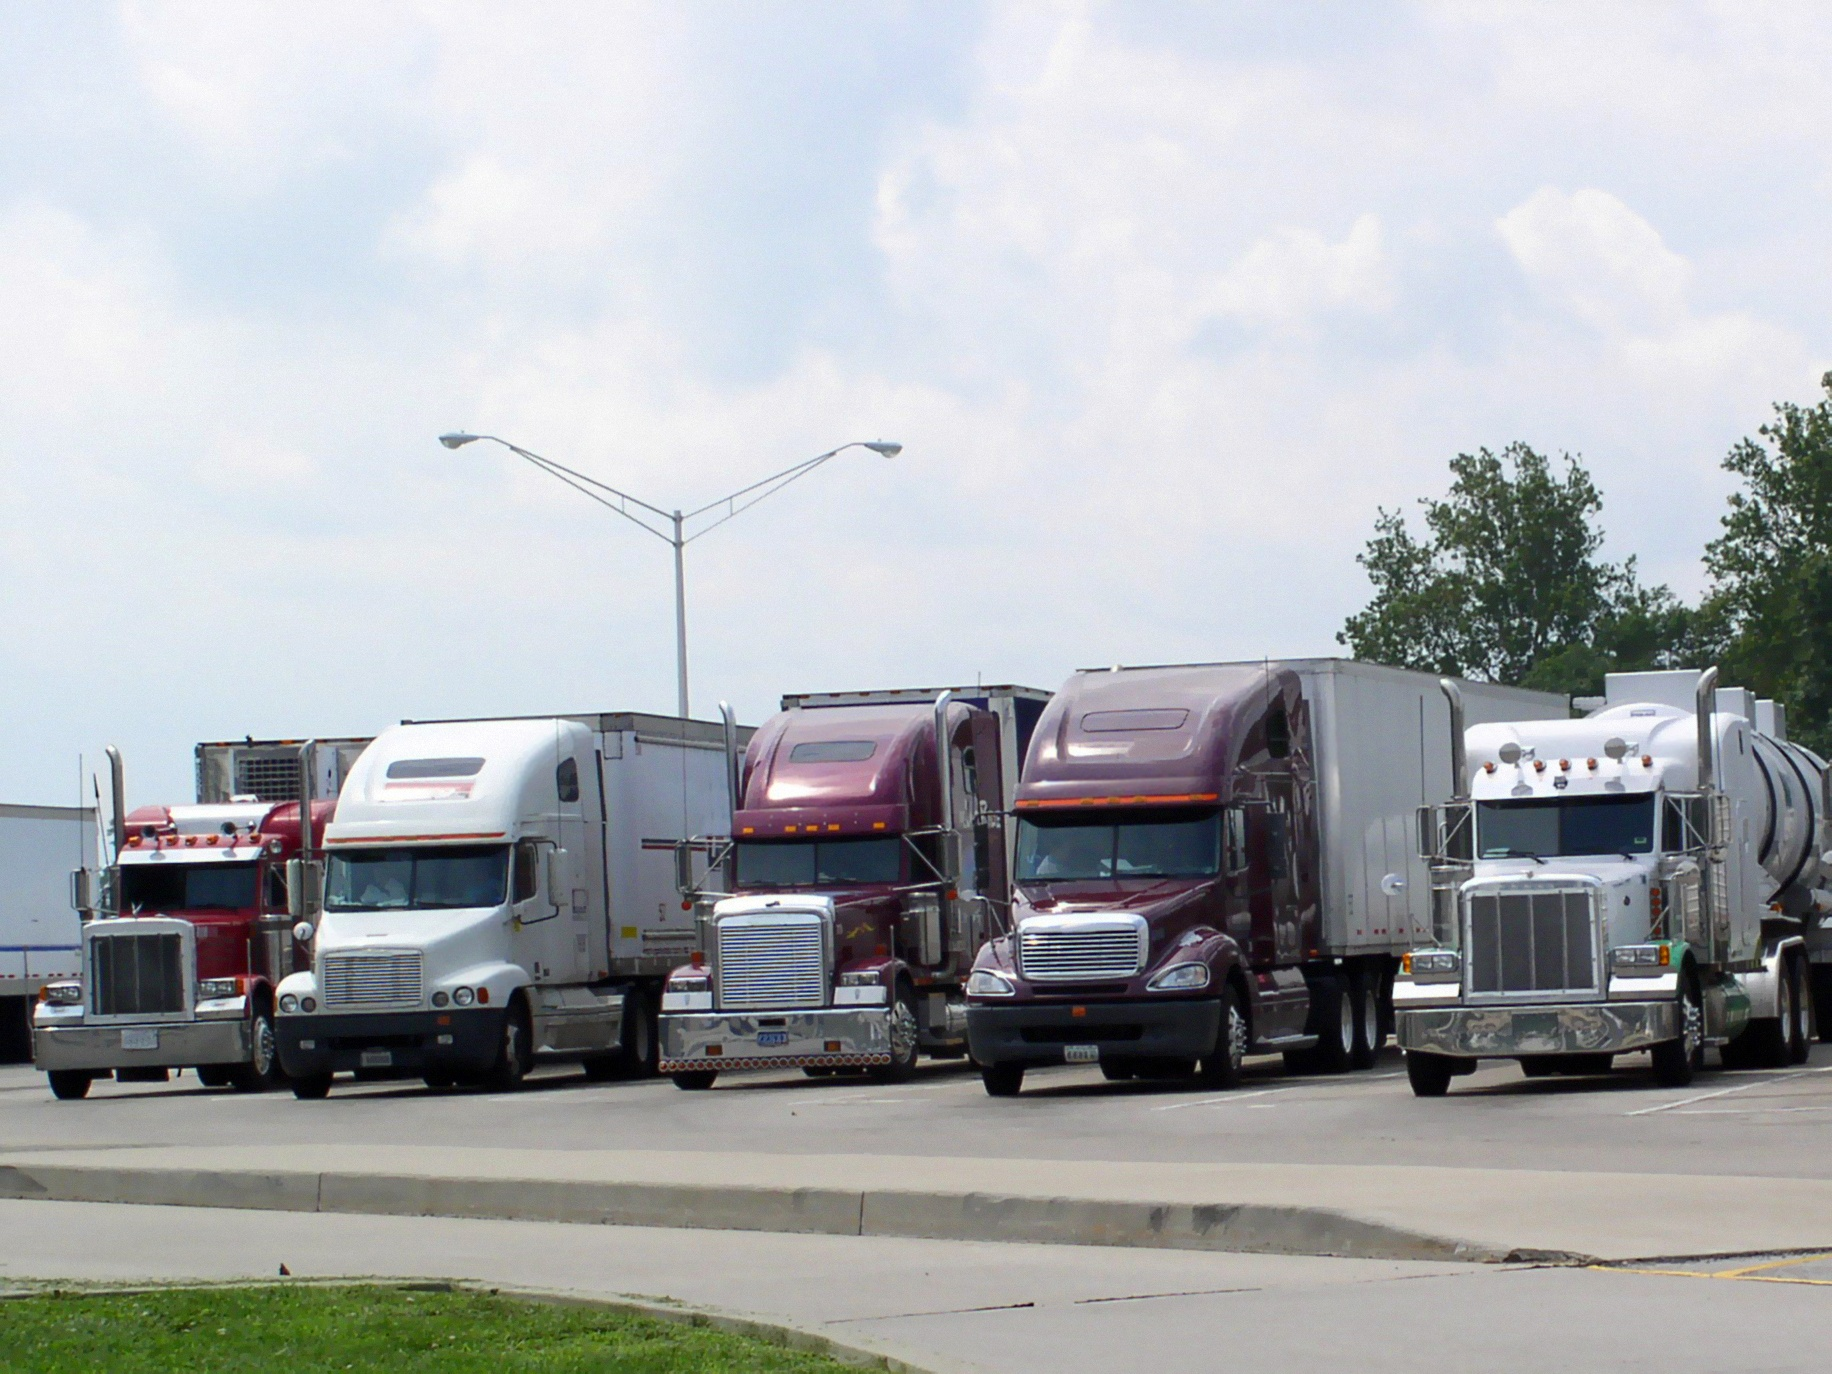 Trucks taking a break a a truck stop